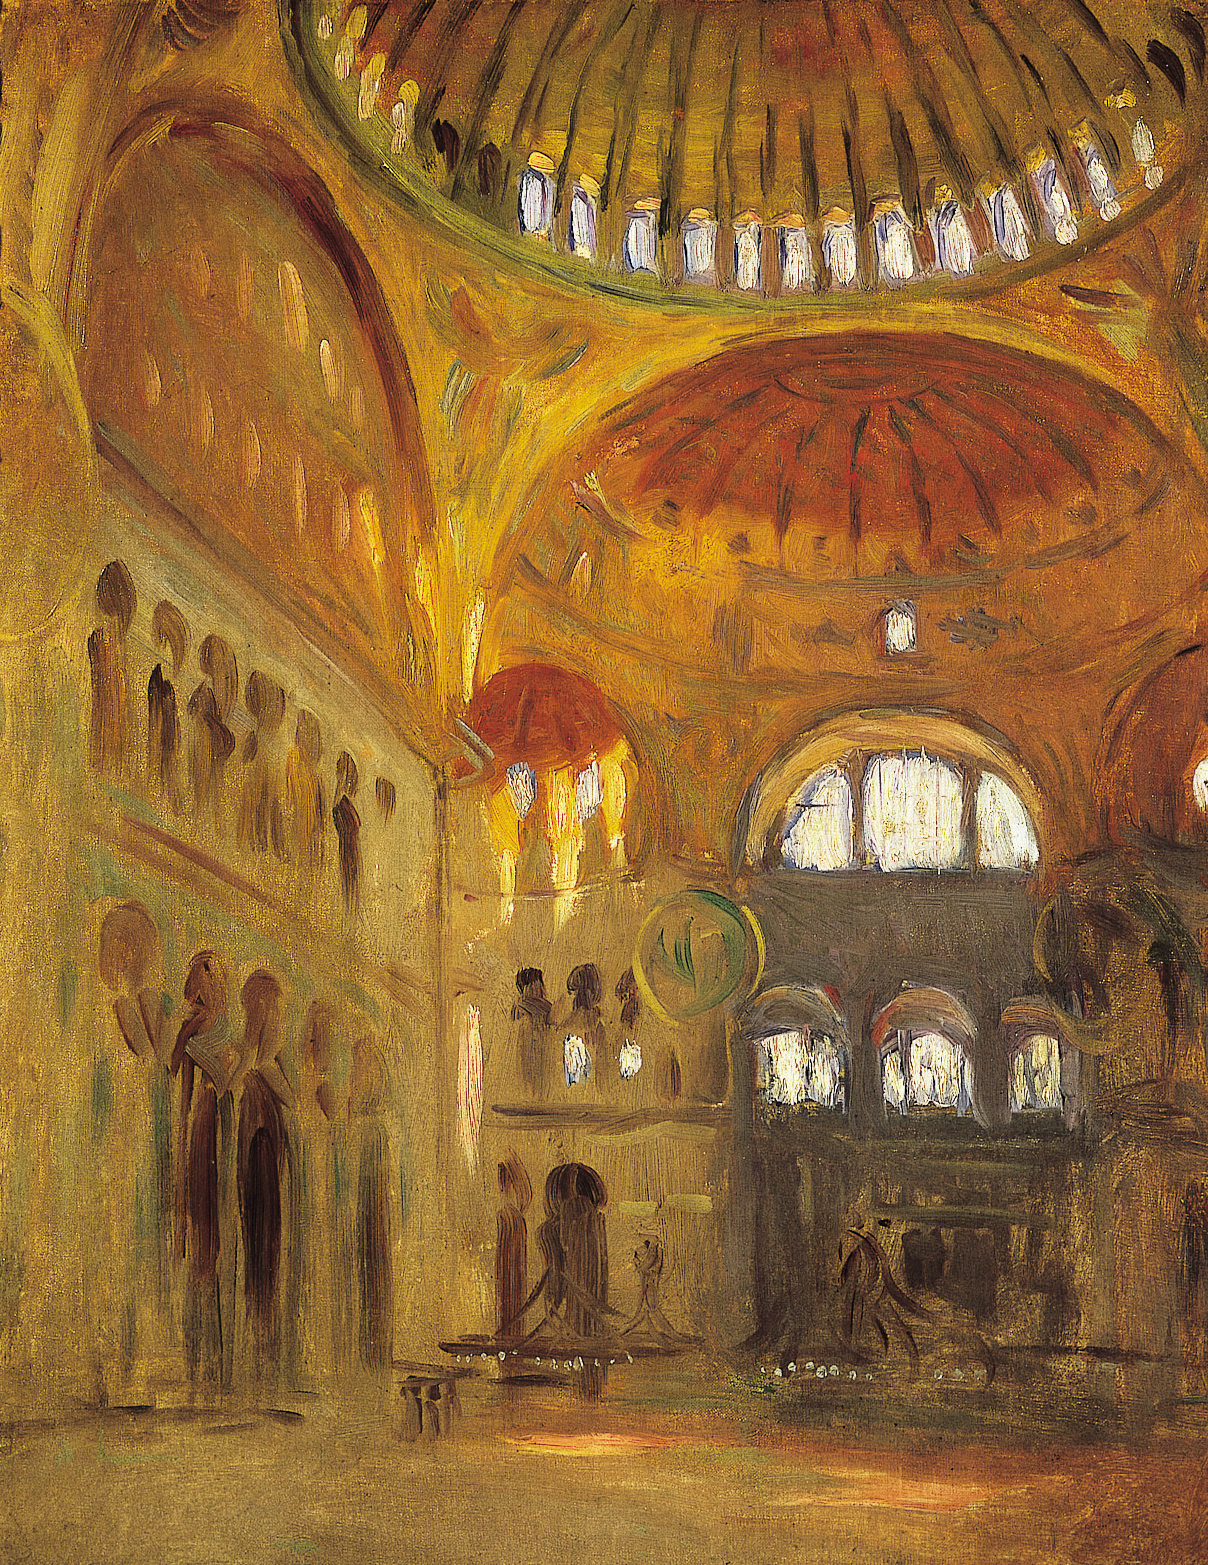 File:Interior of the Hagia Sophia.jpg